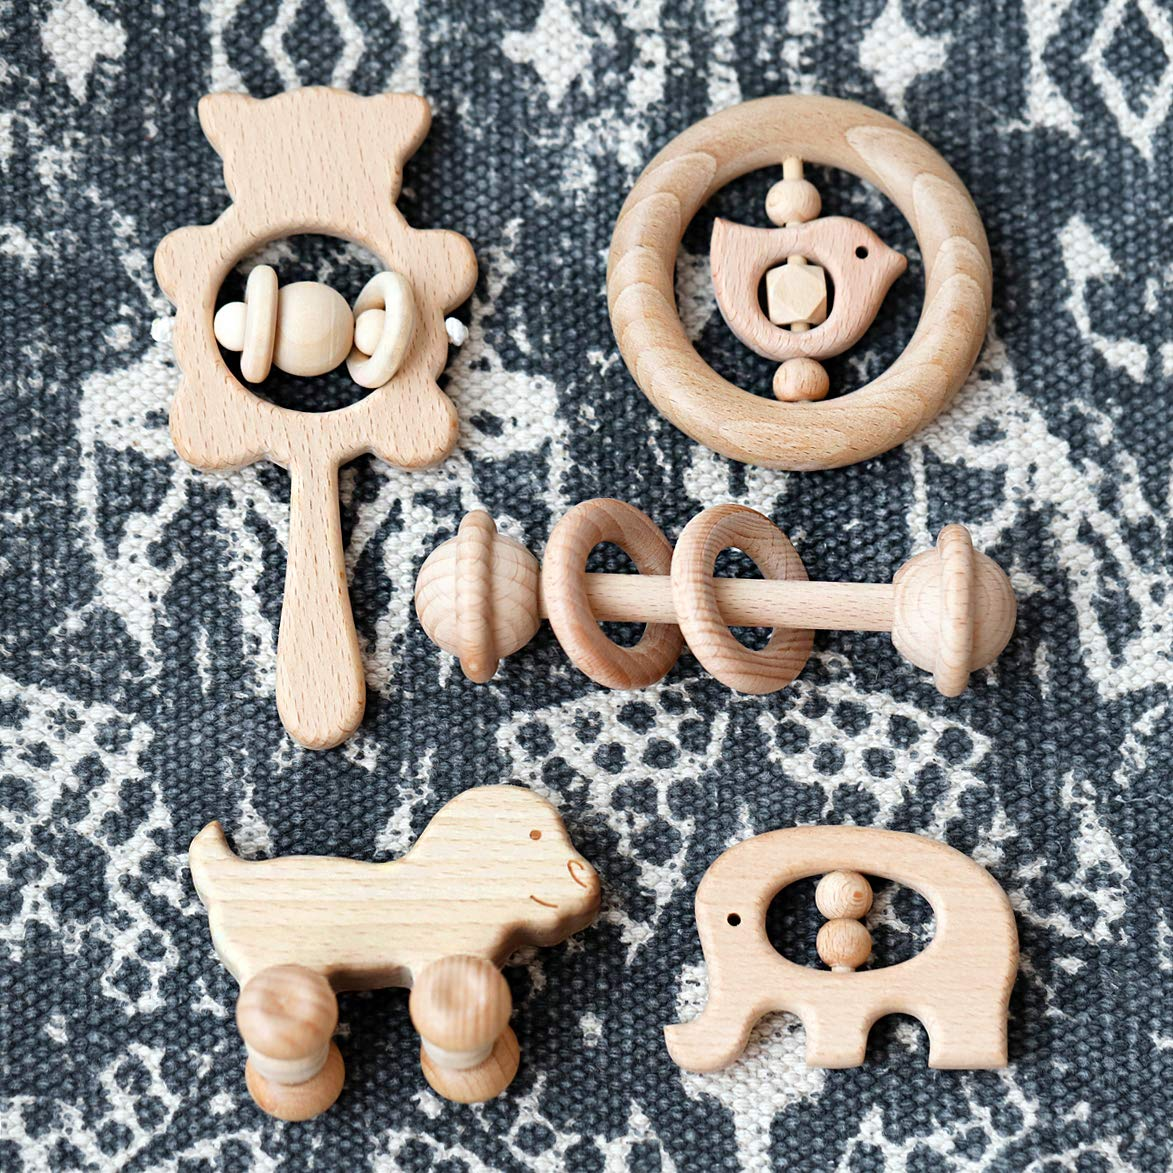 Wooden Baby Rattles Montessori Toys Skwish Wood Teether Organic Beech Teething Ring Nursing New Baby Gift of 5pc Set by Promise Babe (Image #3)